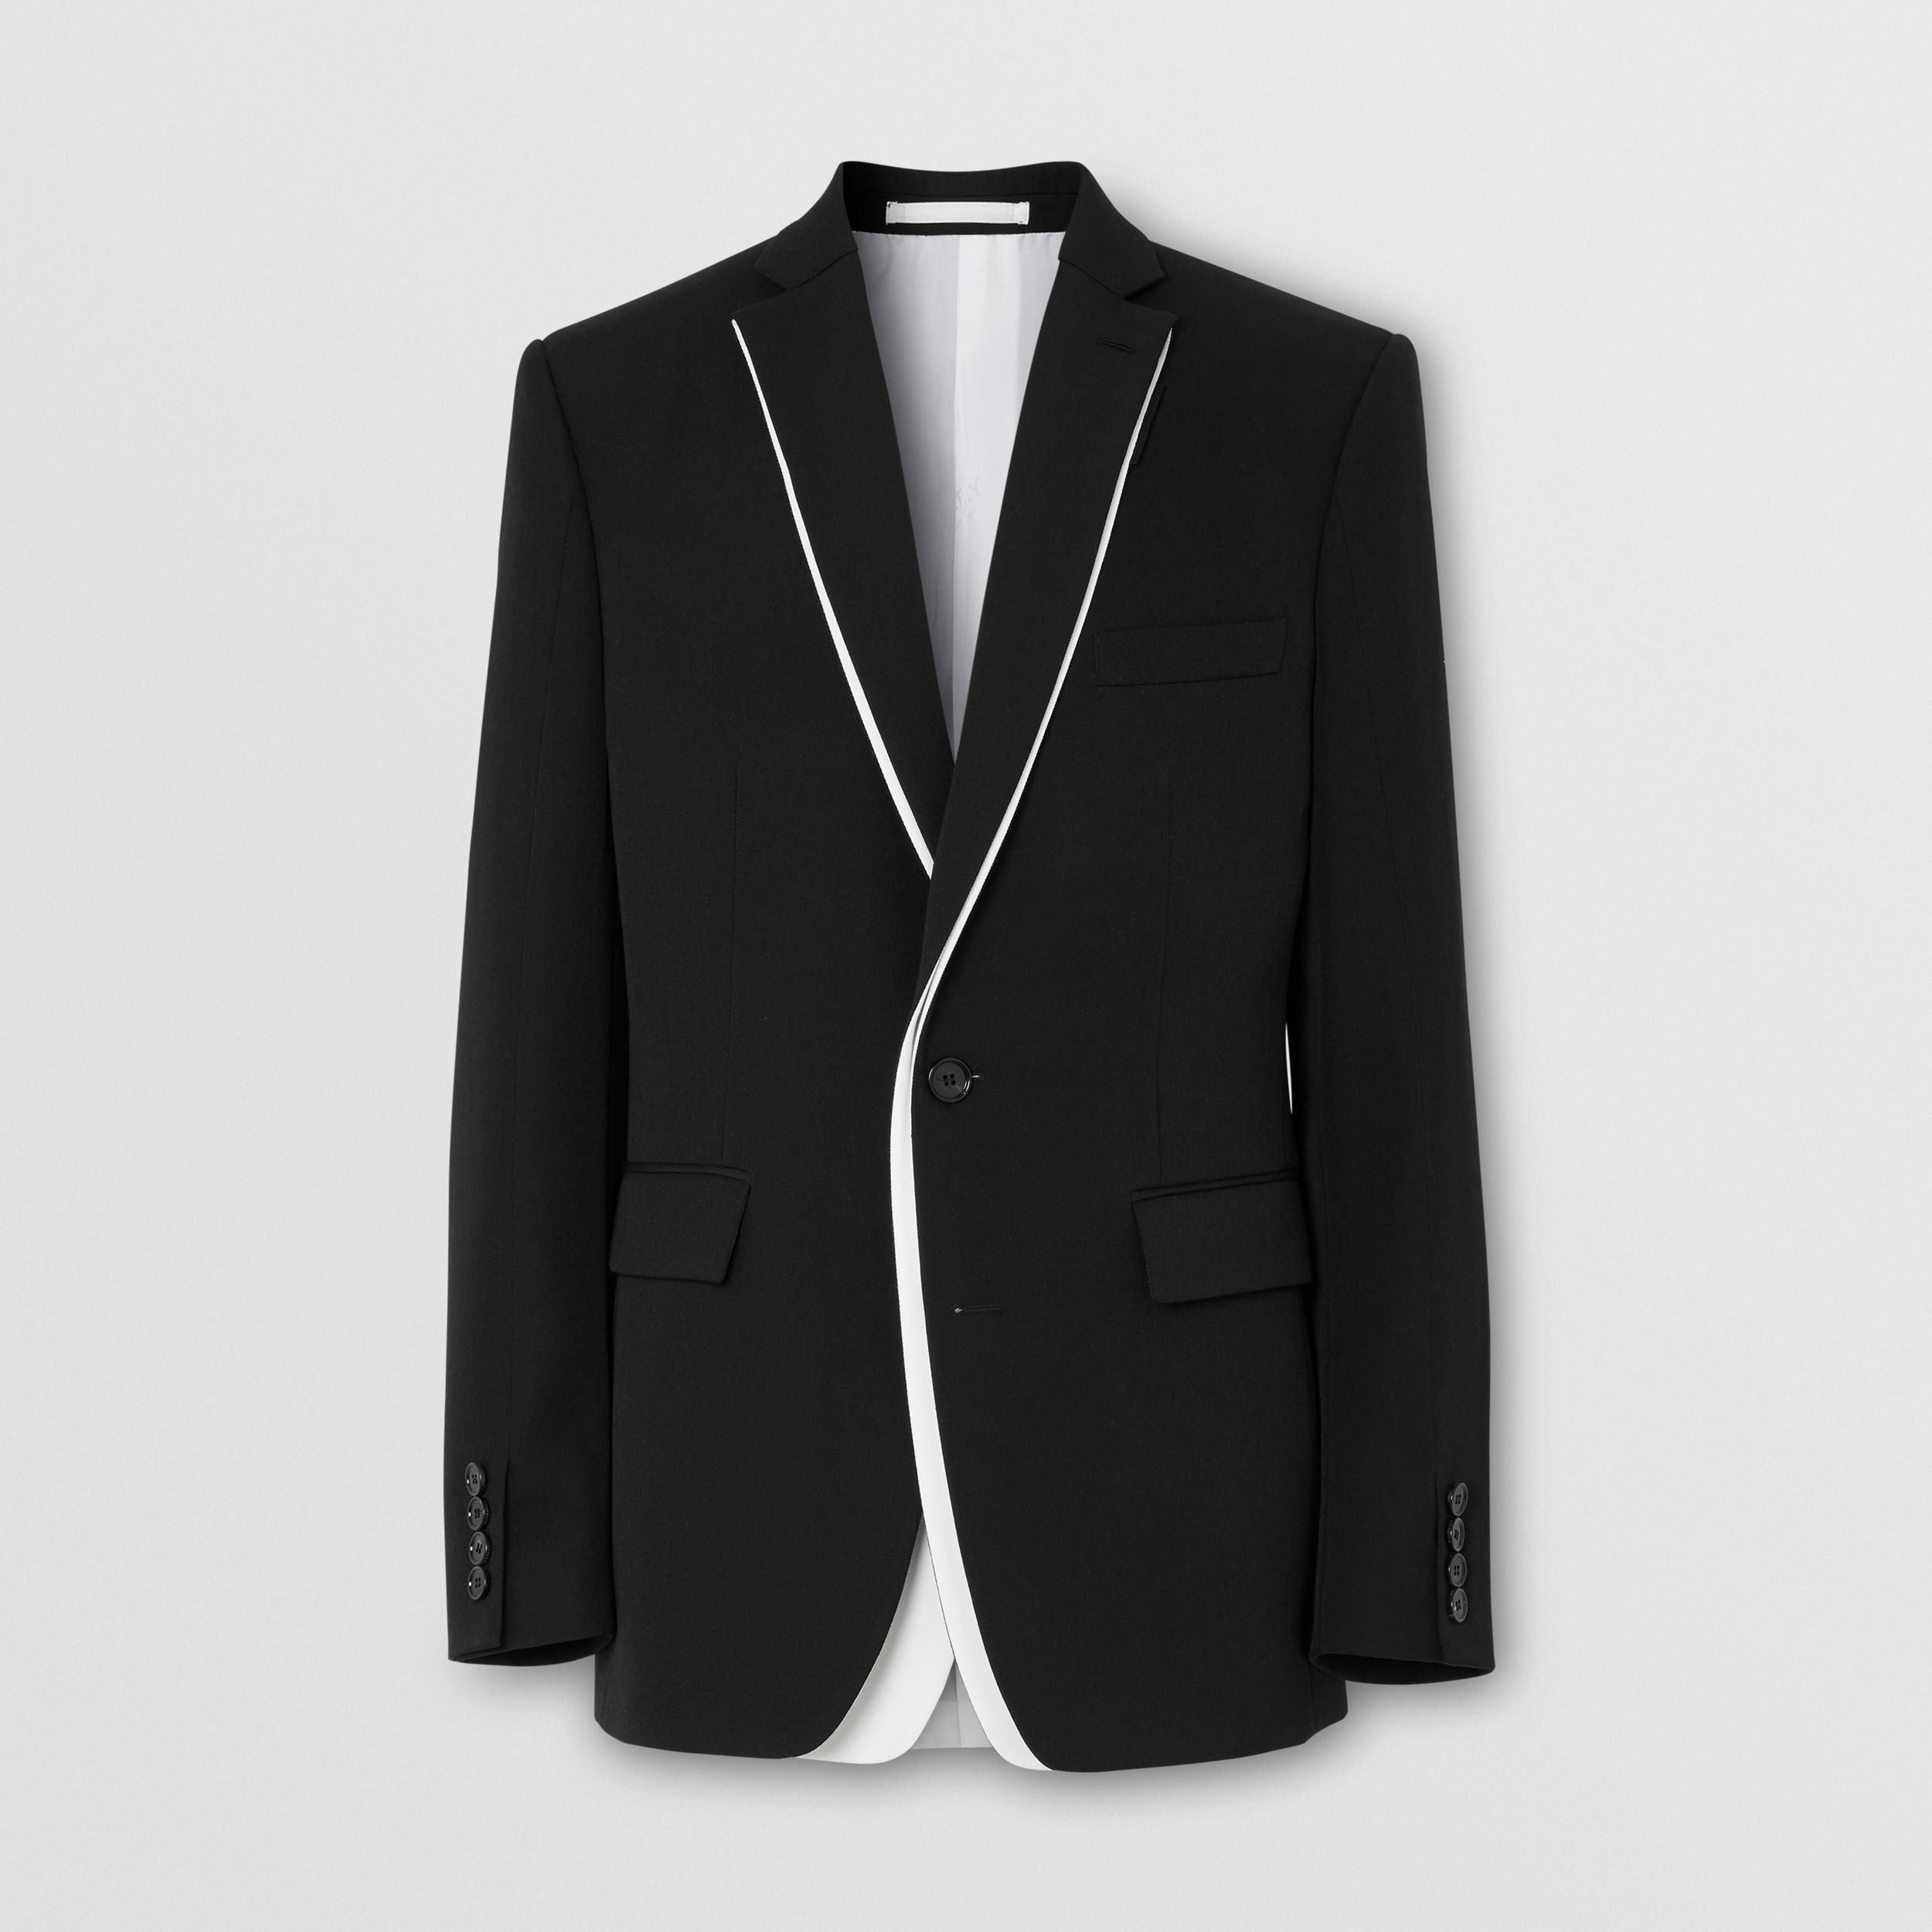 English Fit Double-front Detail Wool Tailored Jacket in Black - Men | Burberry United Kingdom - 4